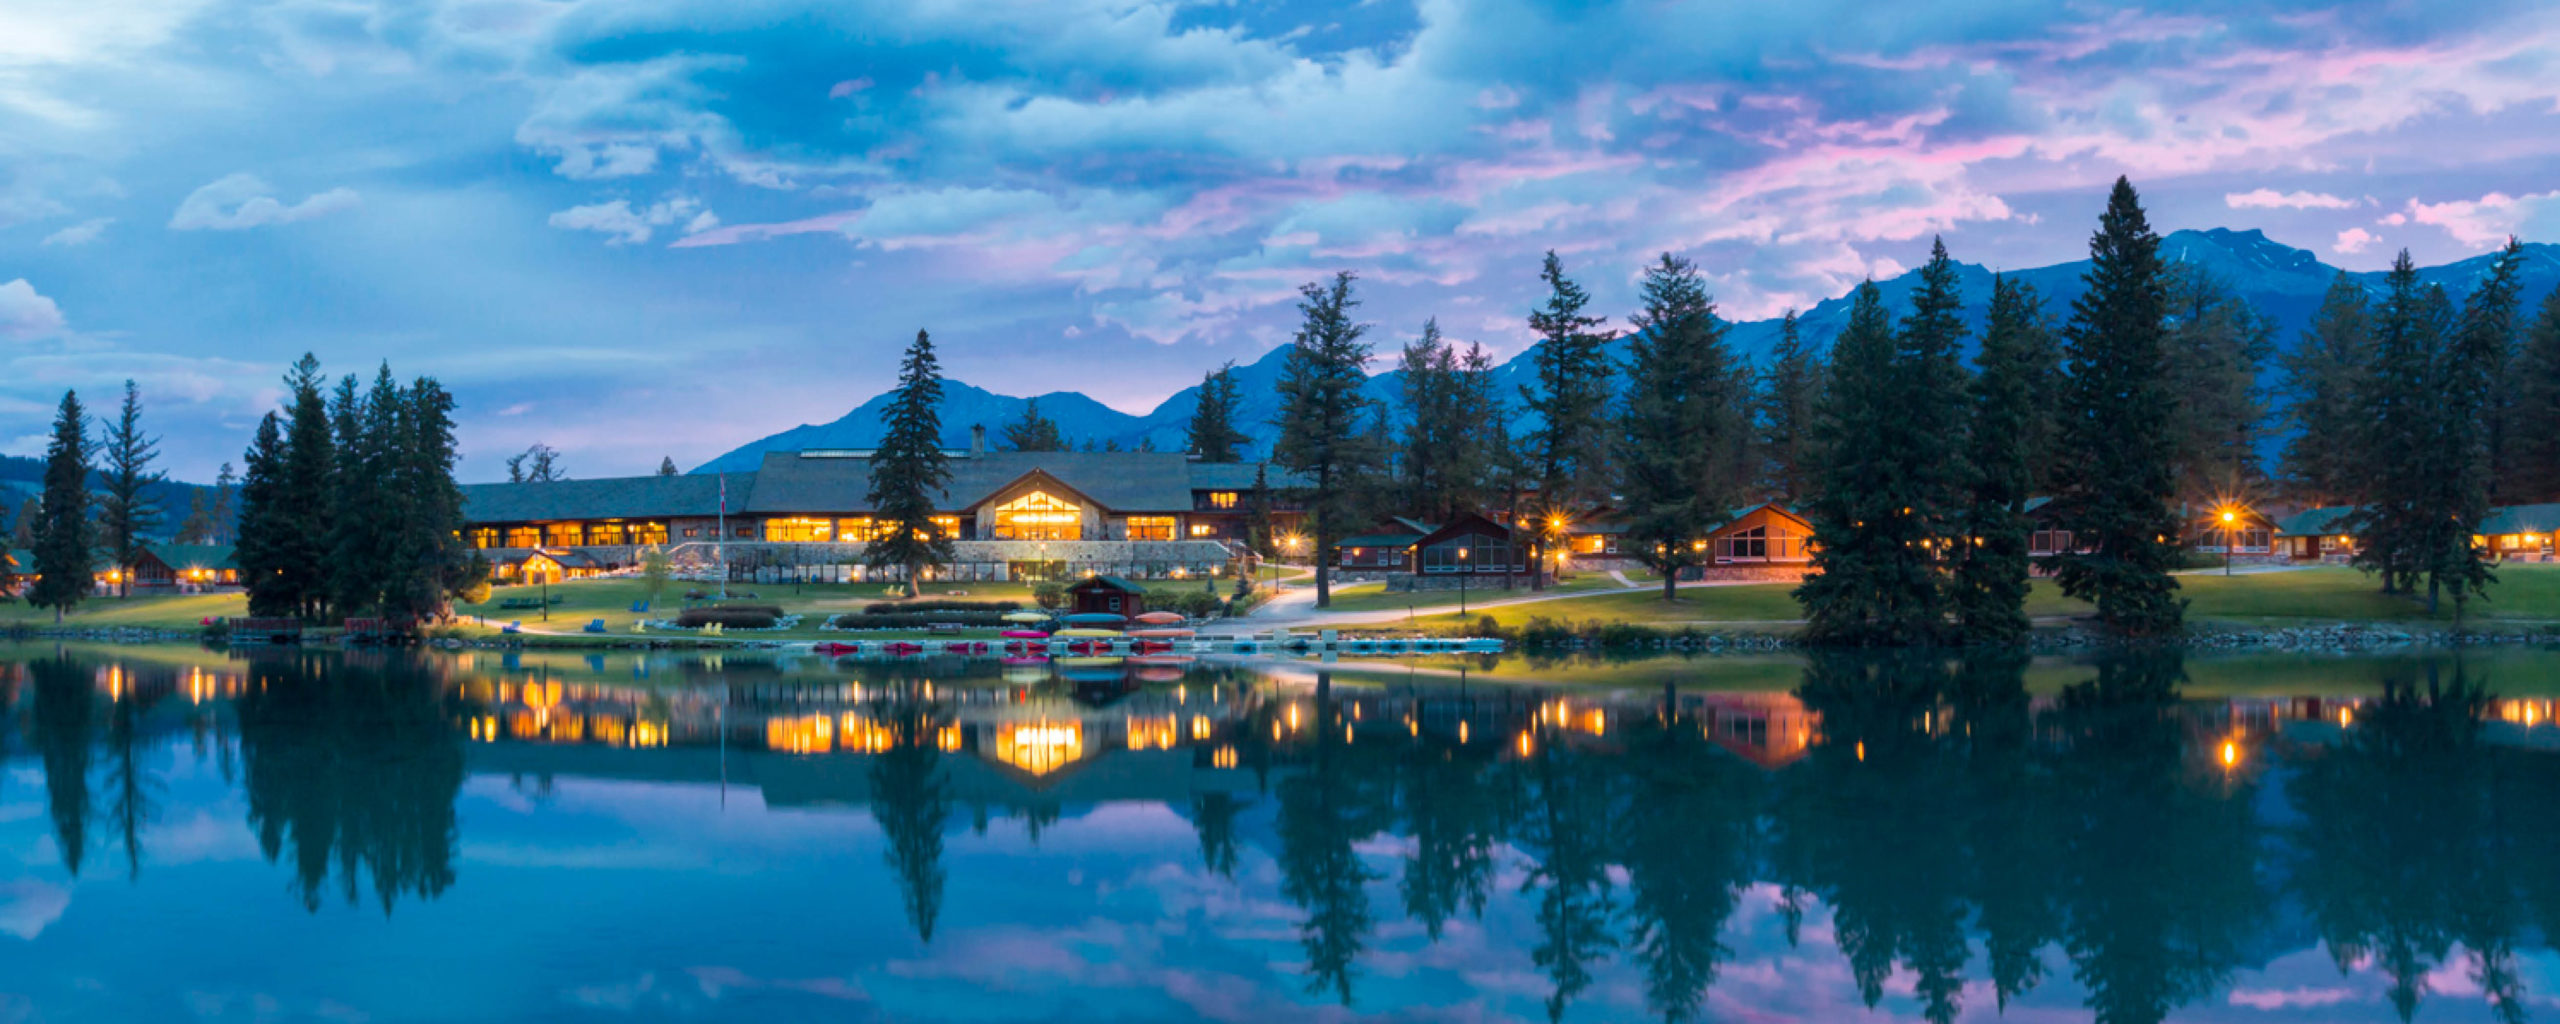 Jasper Park Lodge sits on beautiful Lac Beauvert in the Canadian Rockies